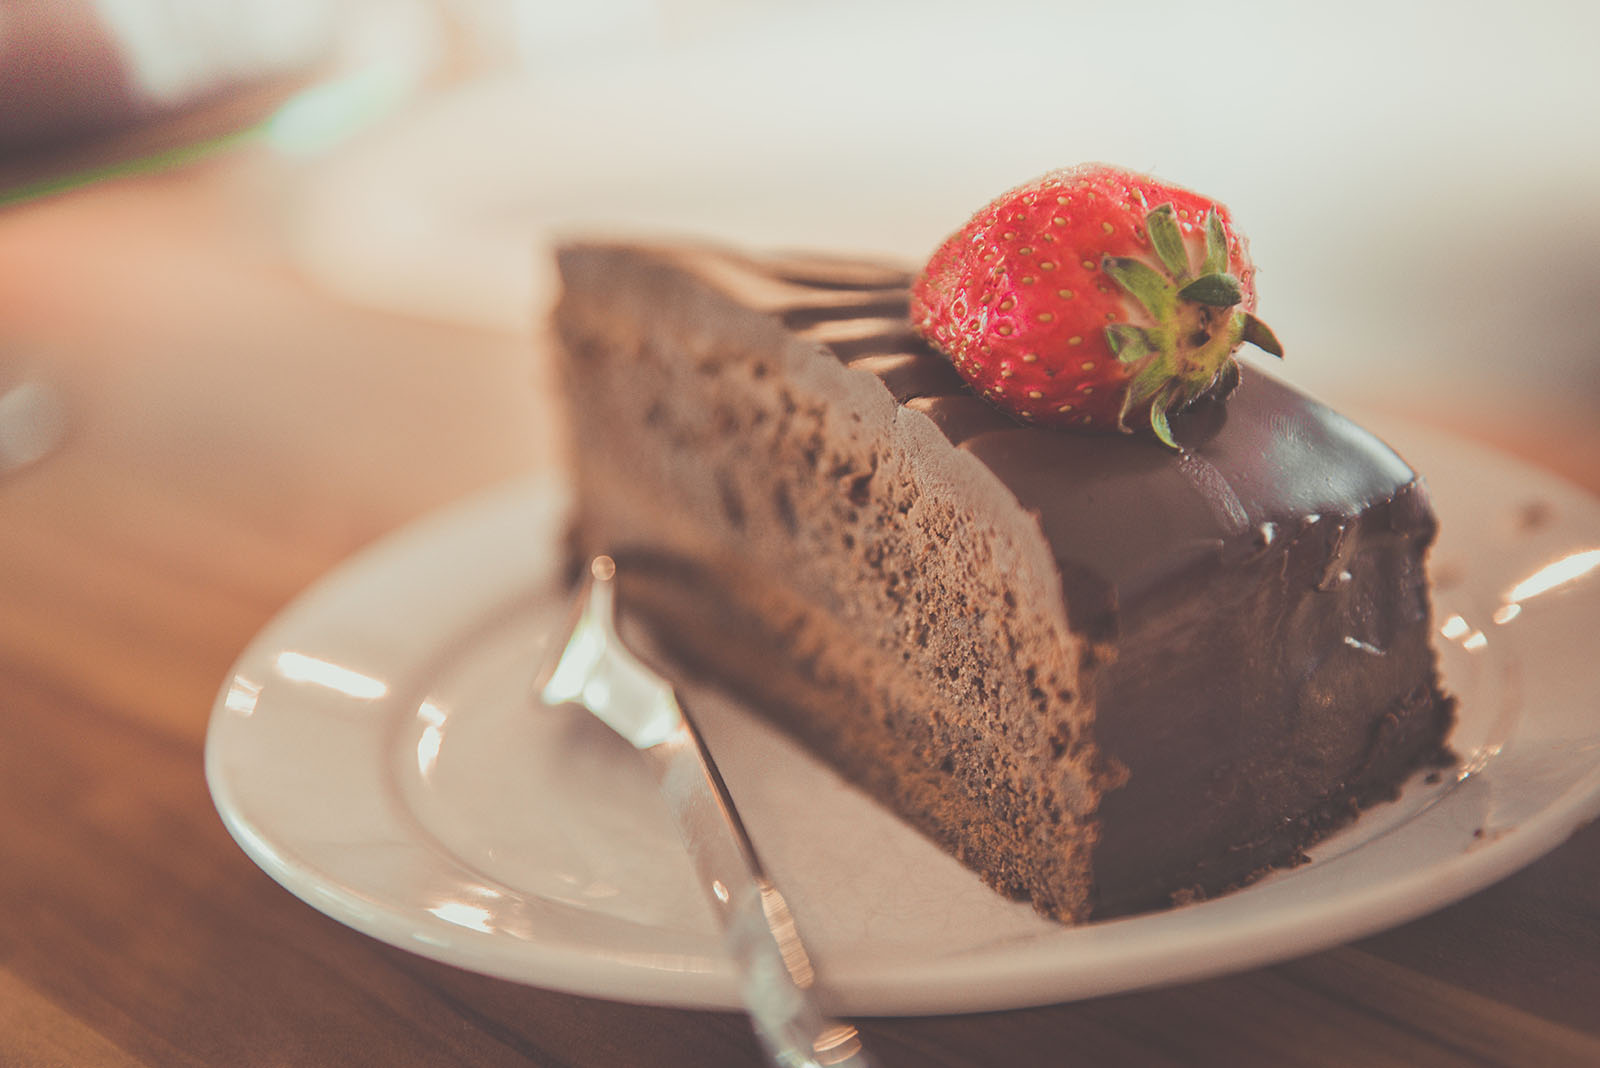 Chocolate cake with strawberry on top.